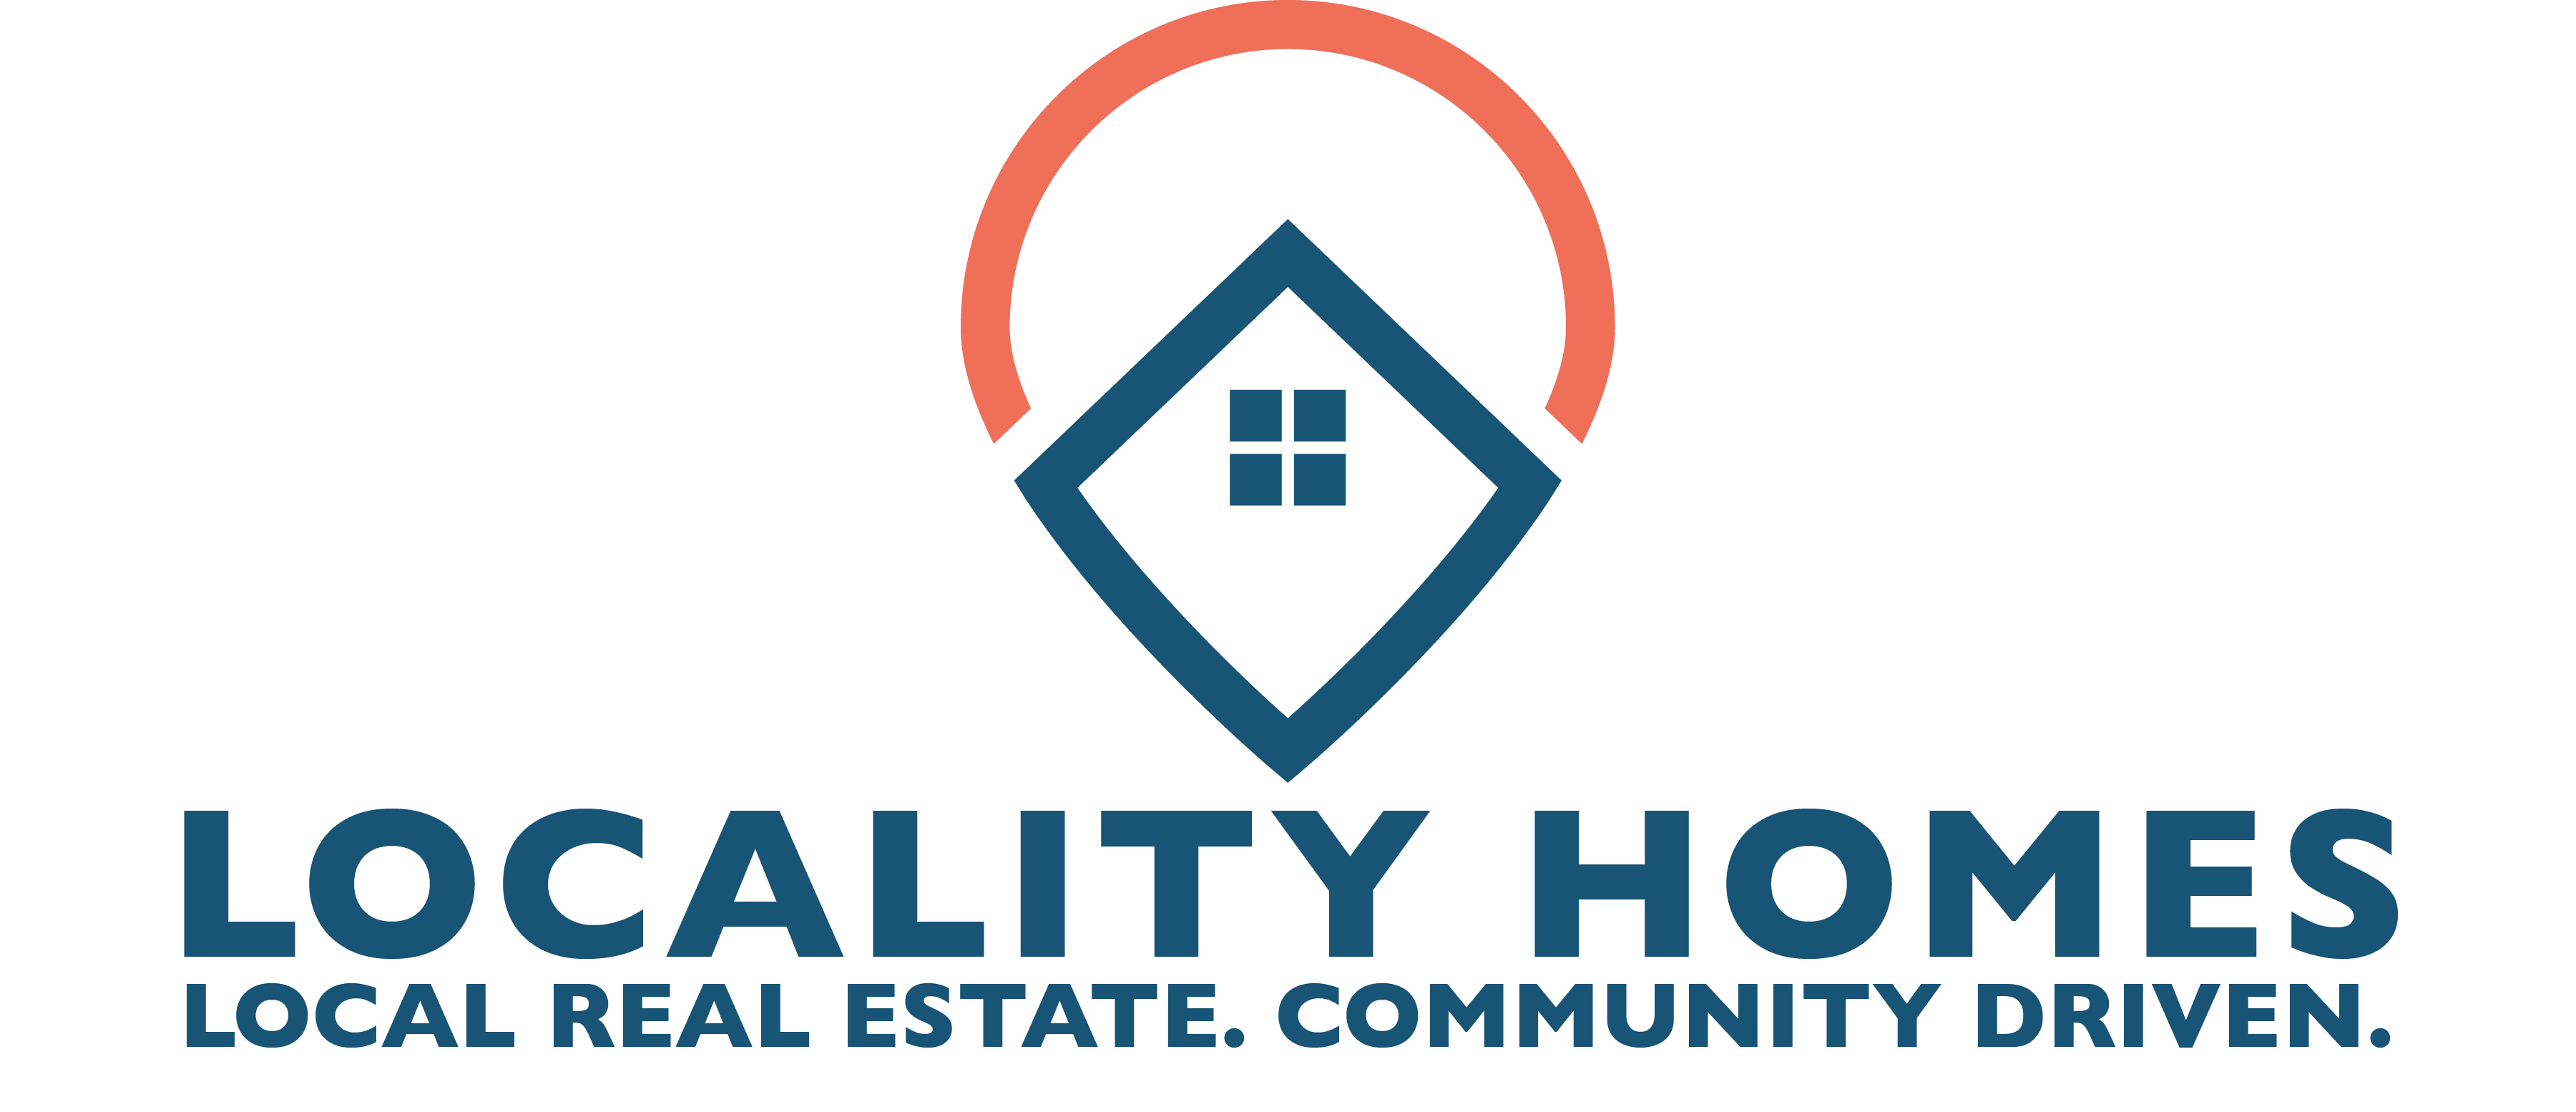 Locality Homes Logo